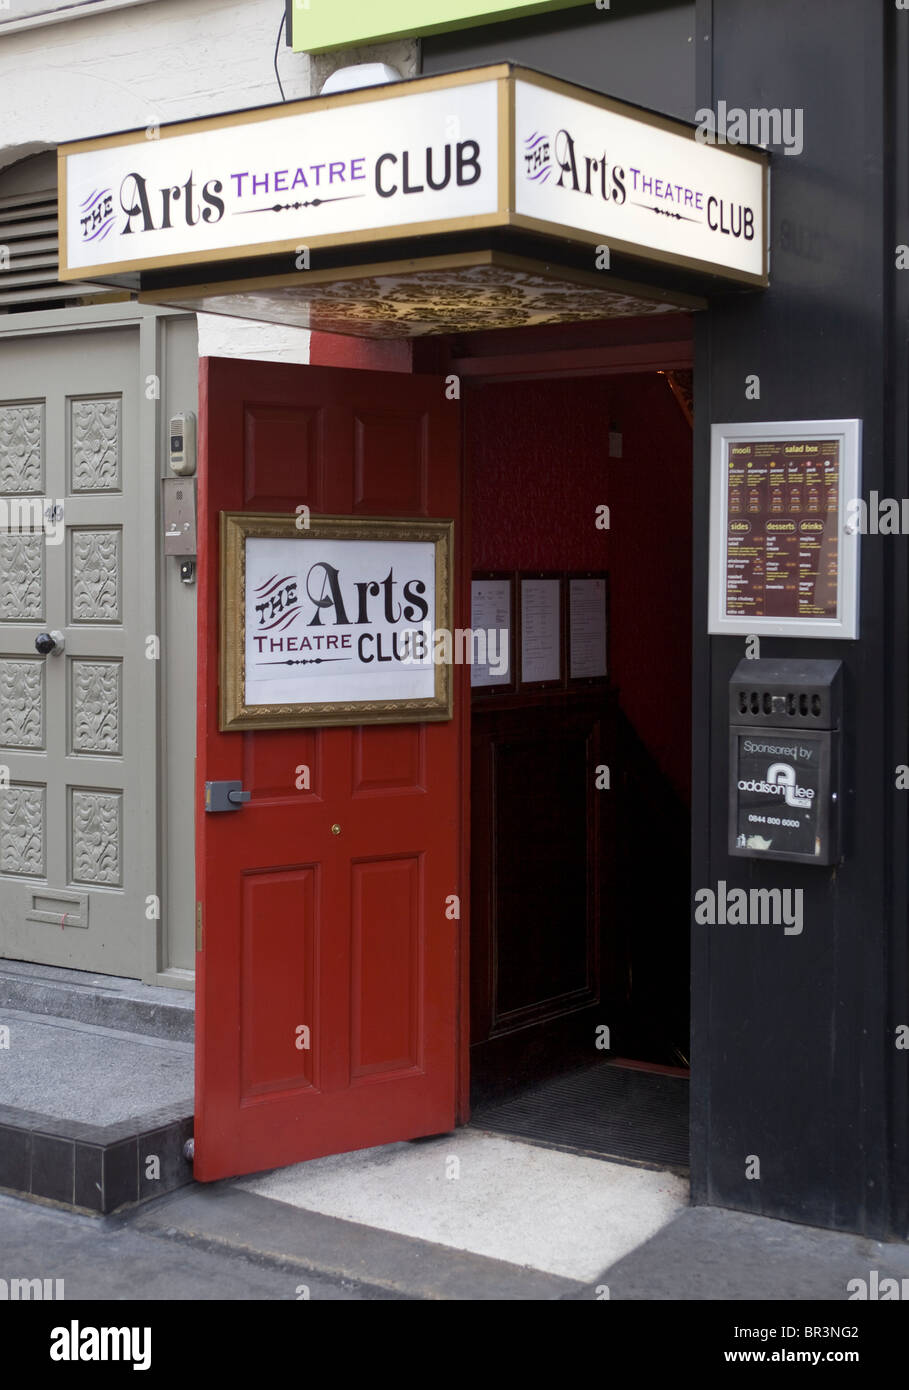 The Arts Theatre Club Soho London - Stock Image